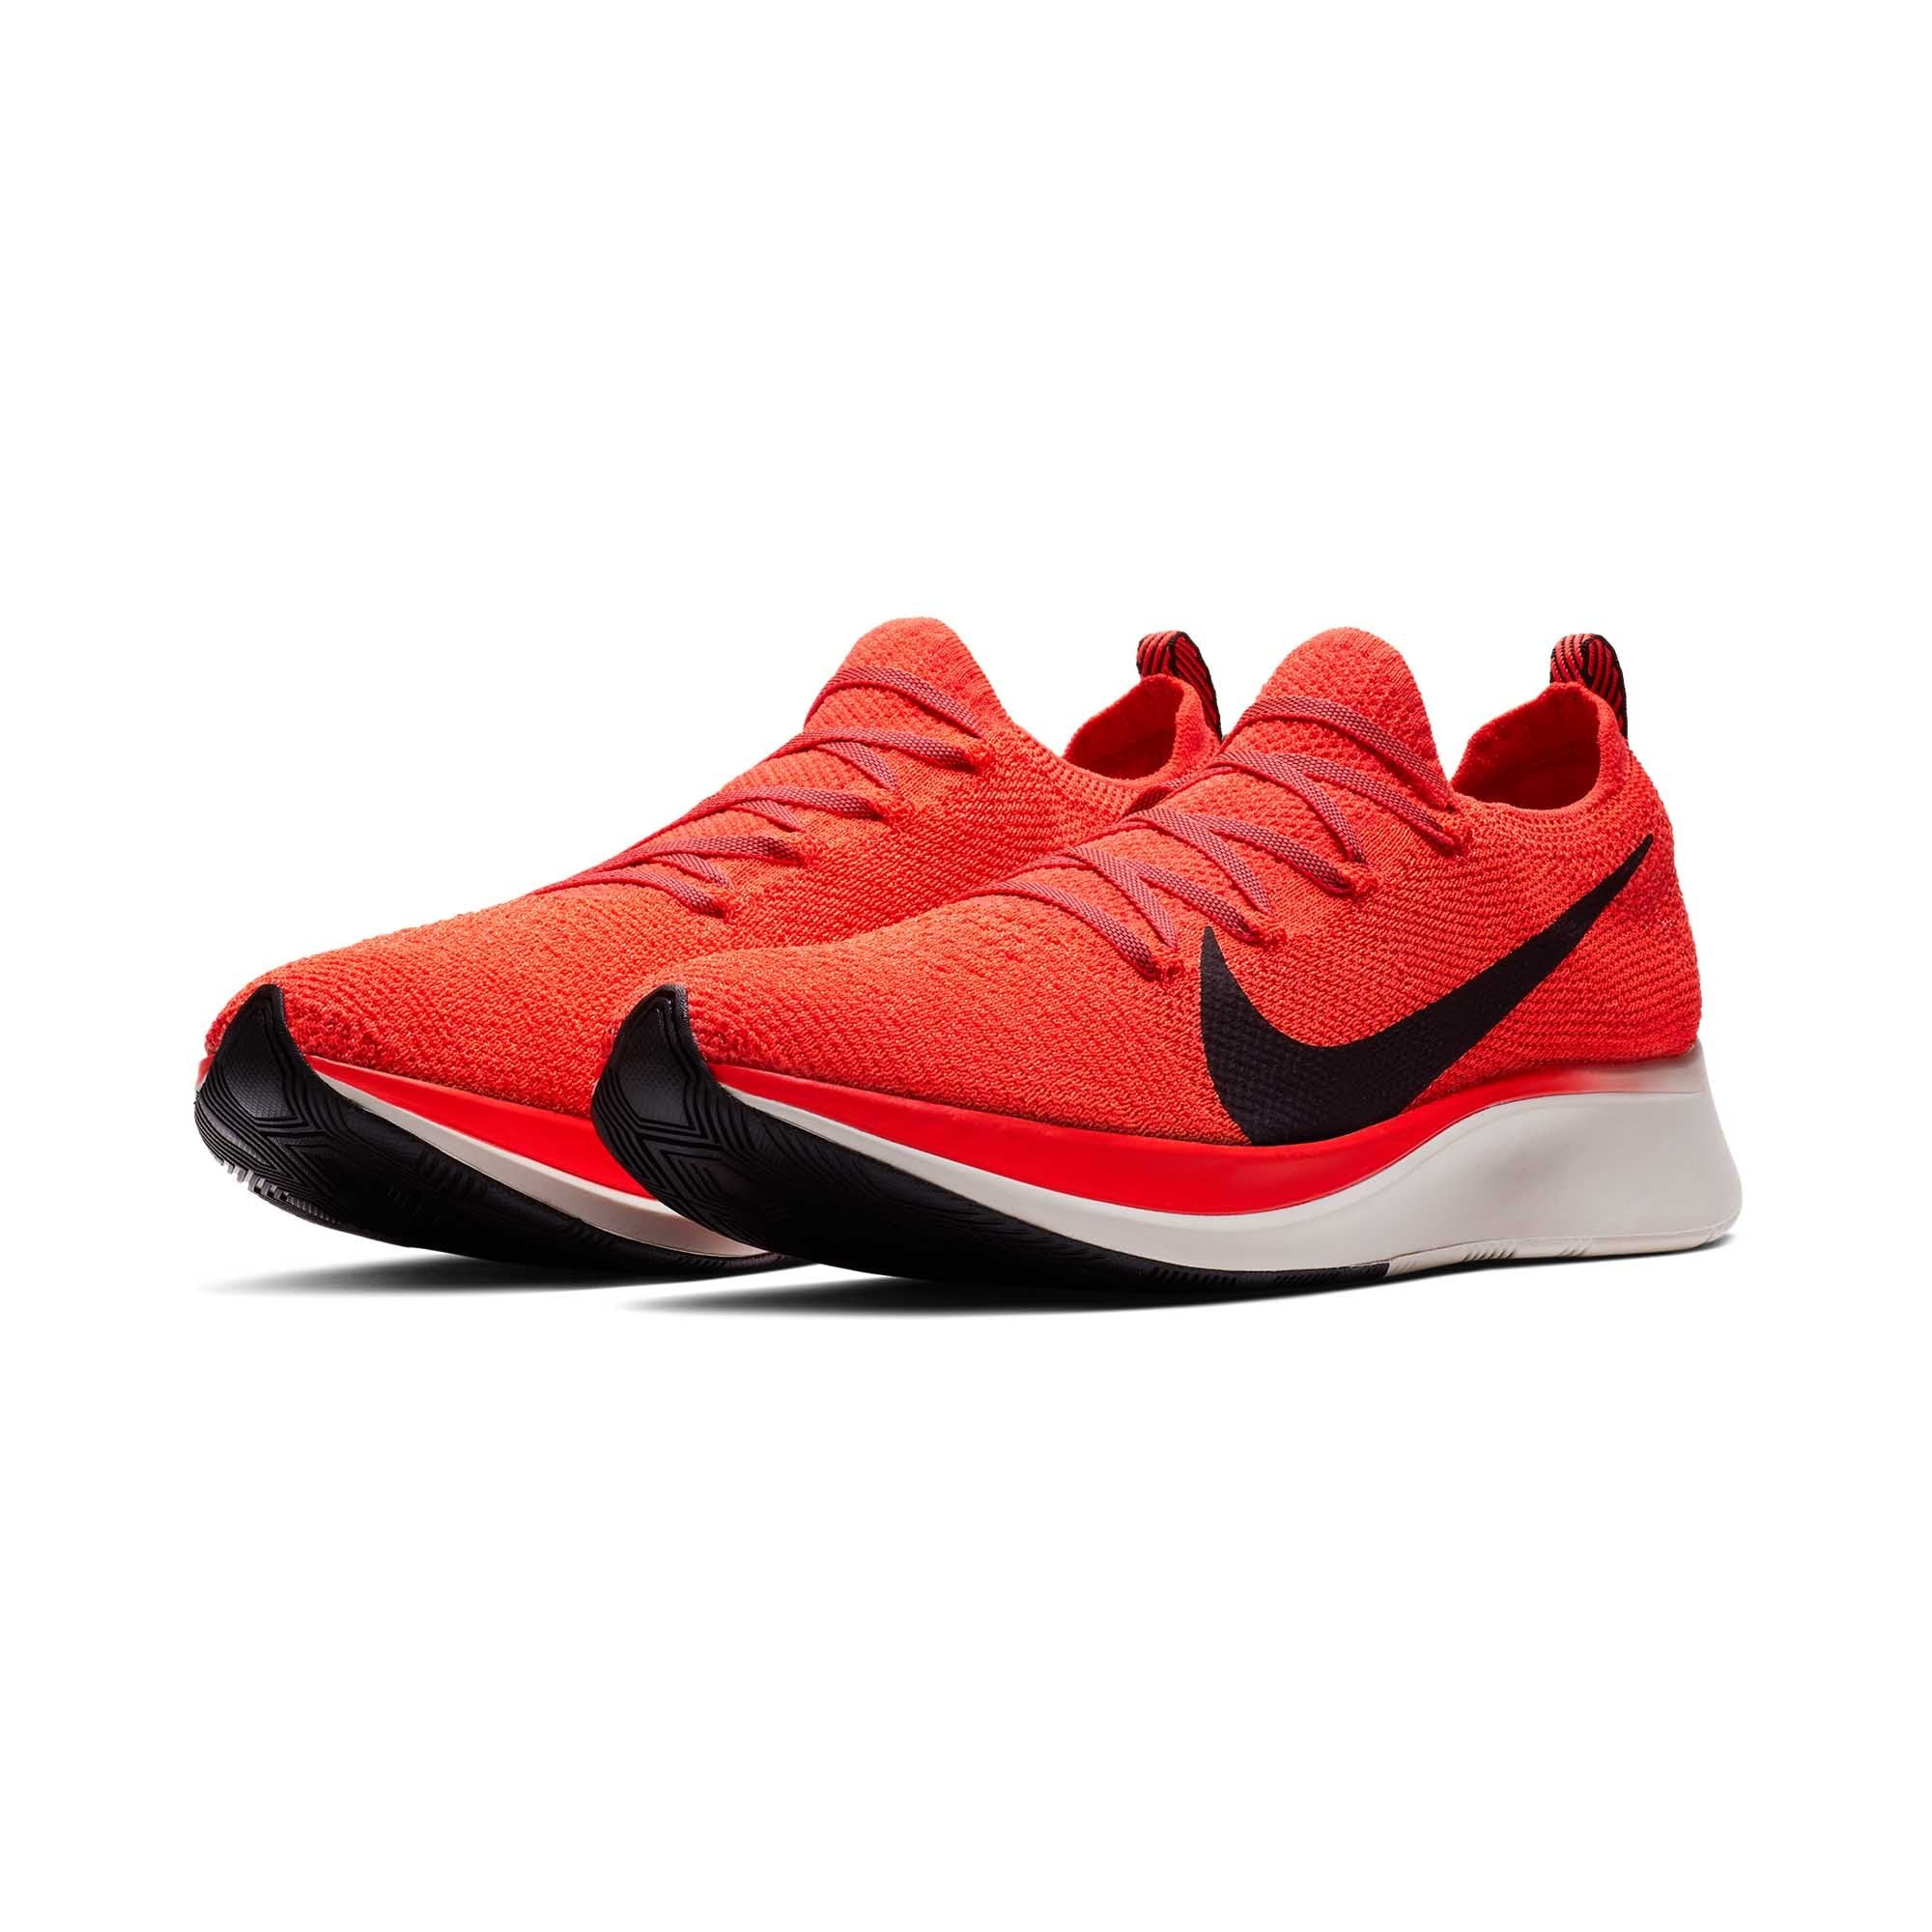 7d09efd1be5 Buy Nike Men Zoom Fly Flyknit Running Shoes Online in Singapore ...